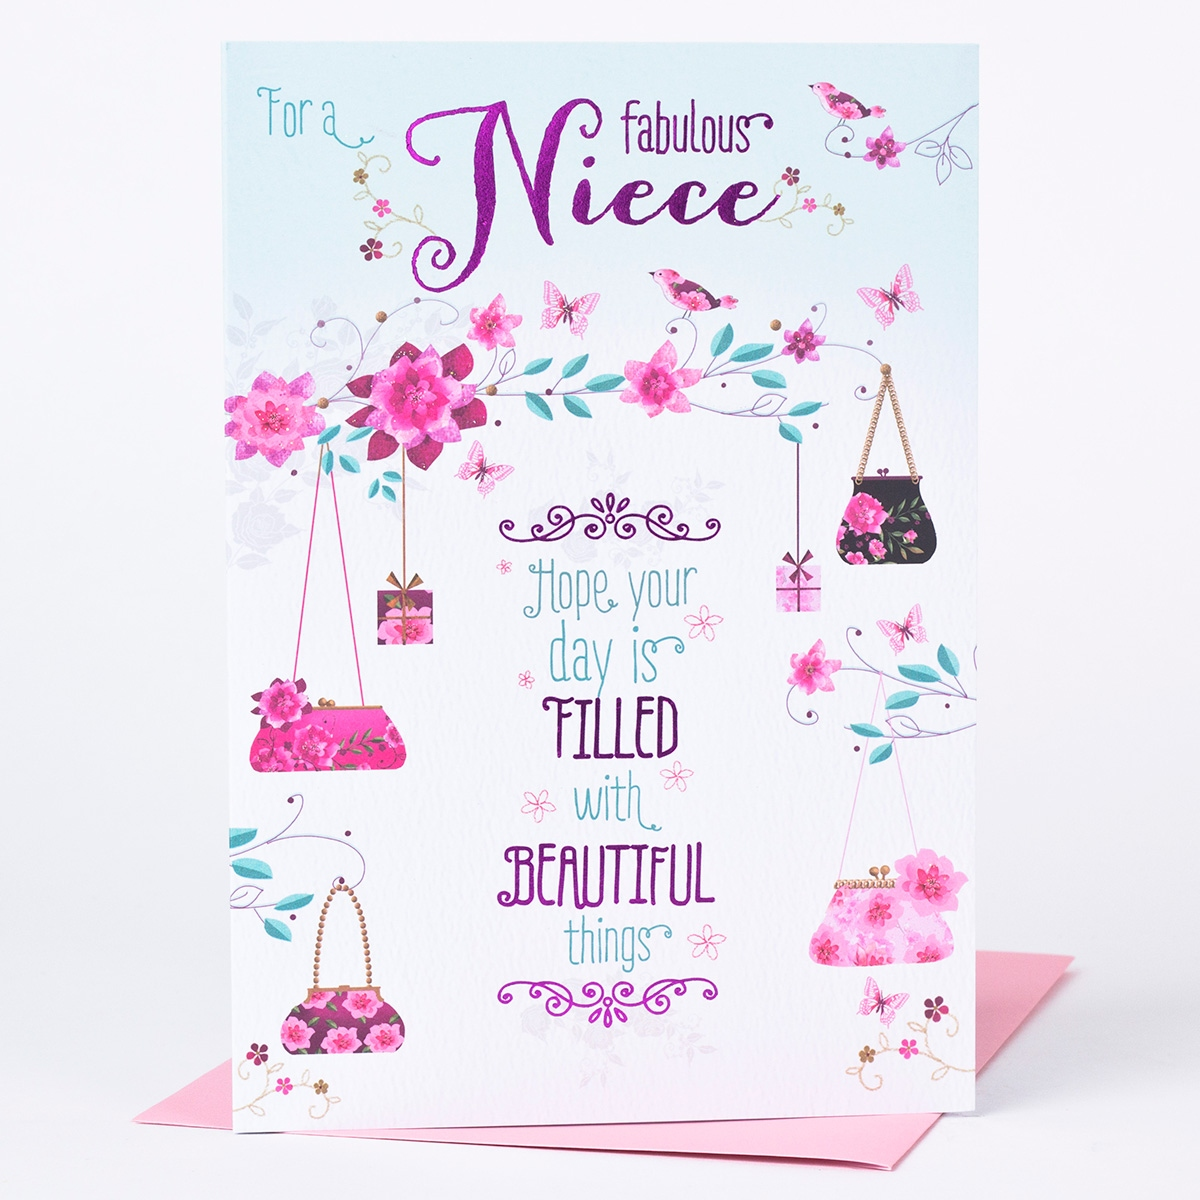 birthday greeting cards for a niece ; birthday-card-for-niece-luxury-birthday-card-niece-beautiful-things-of-birthday-card-for-niece